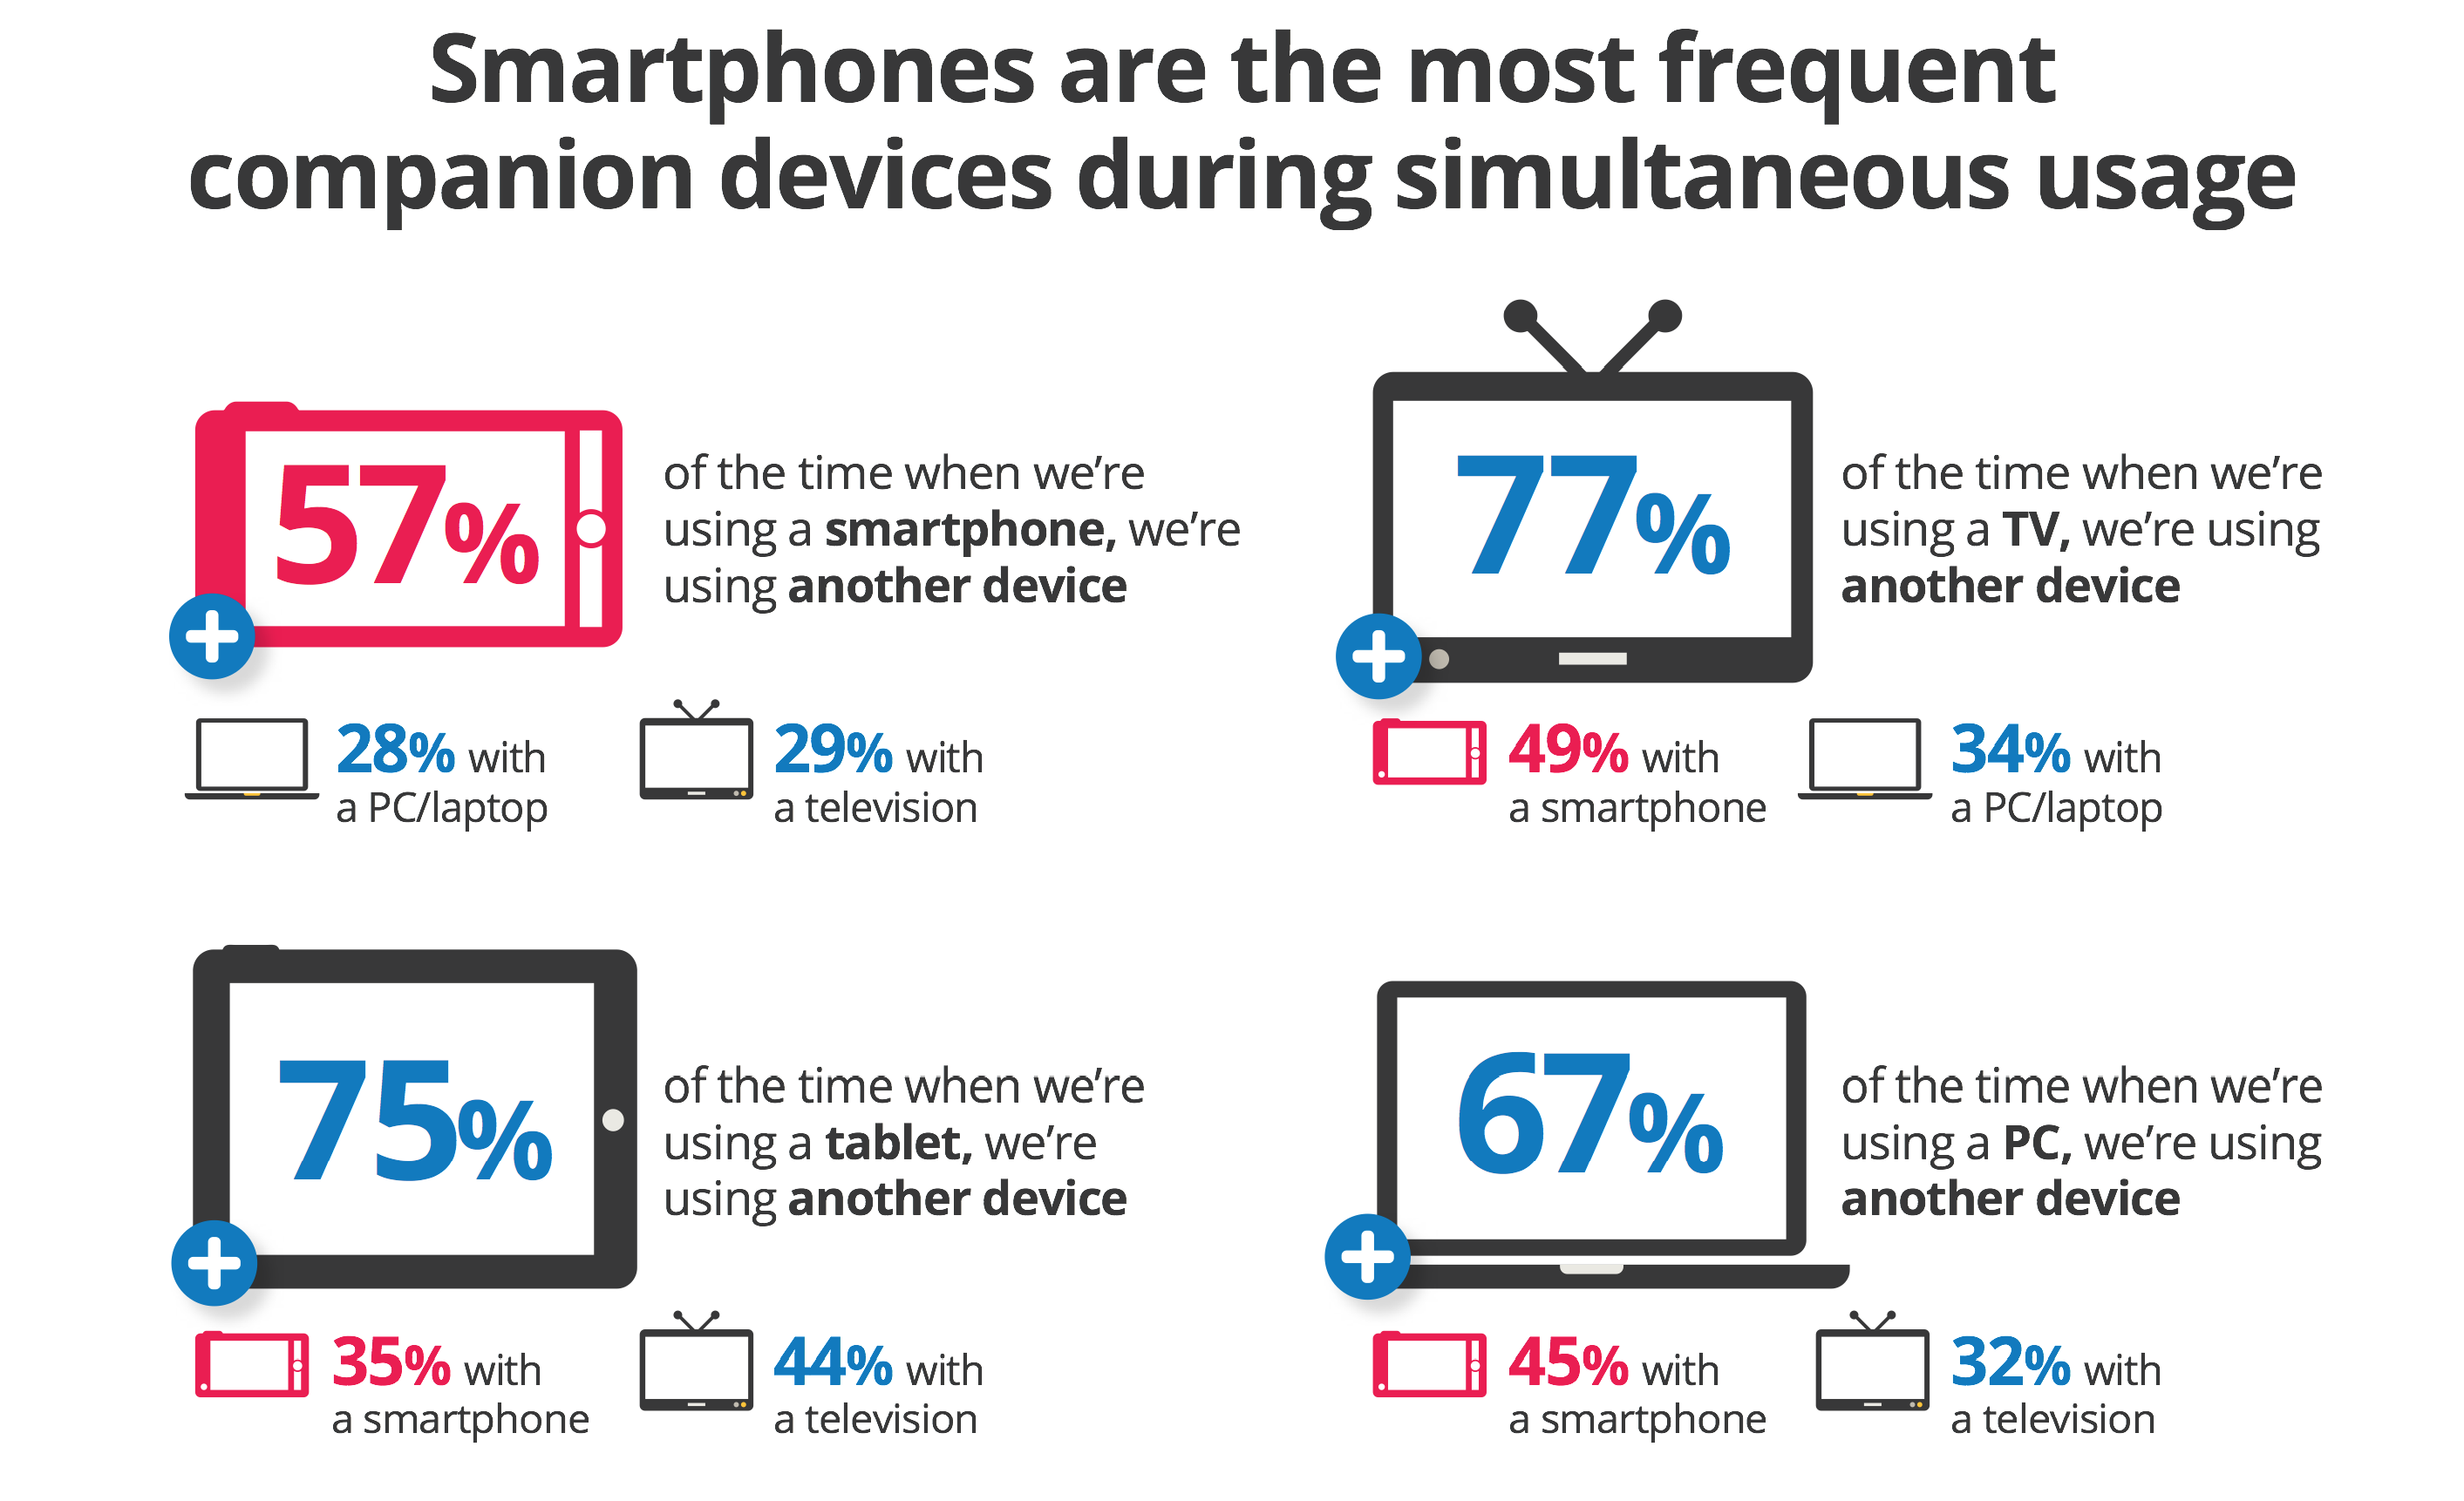 Smartphones are the most frequent companion devices during simultaneous usage